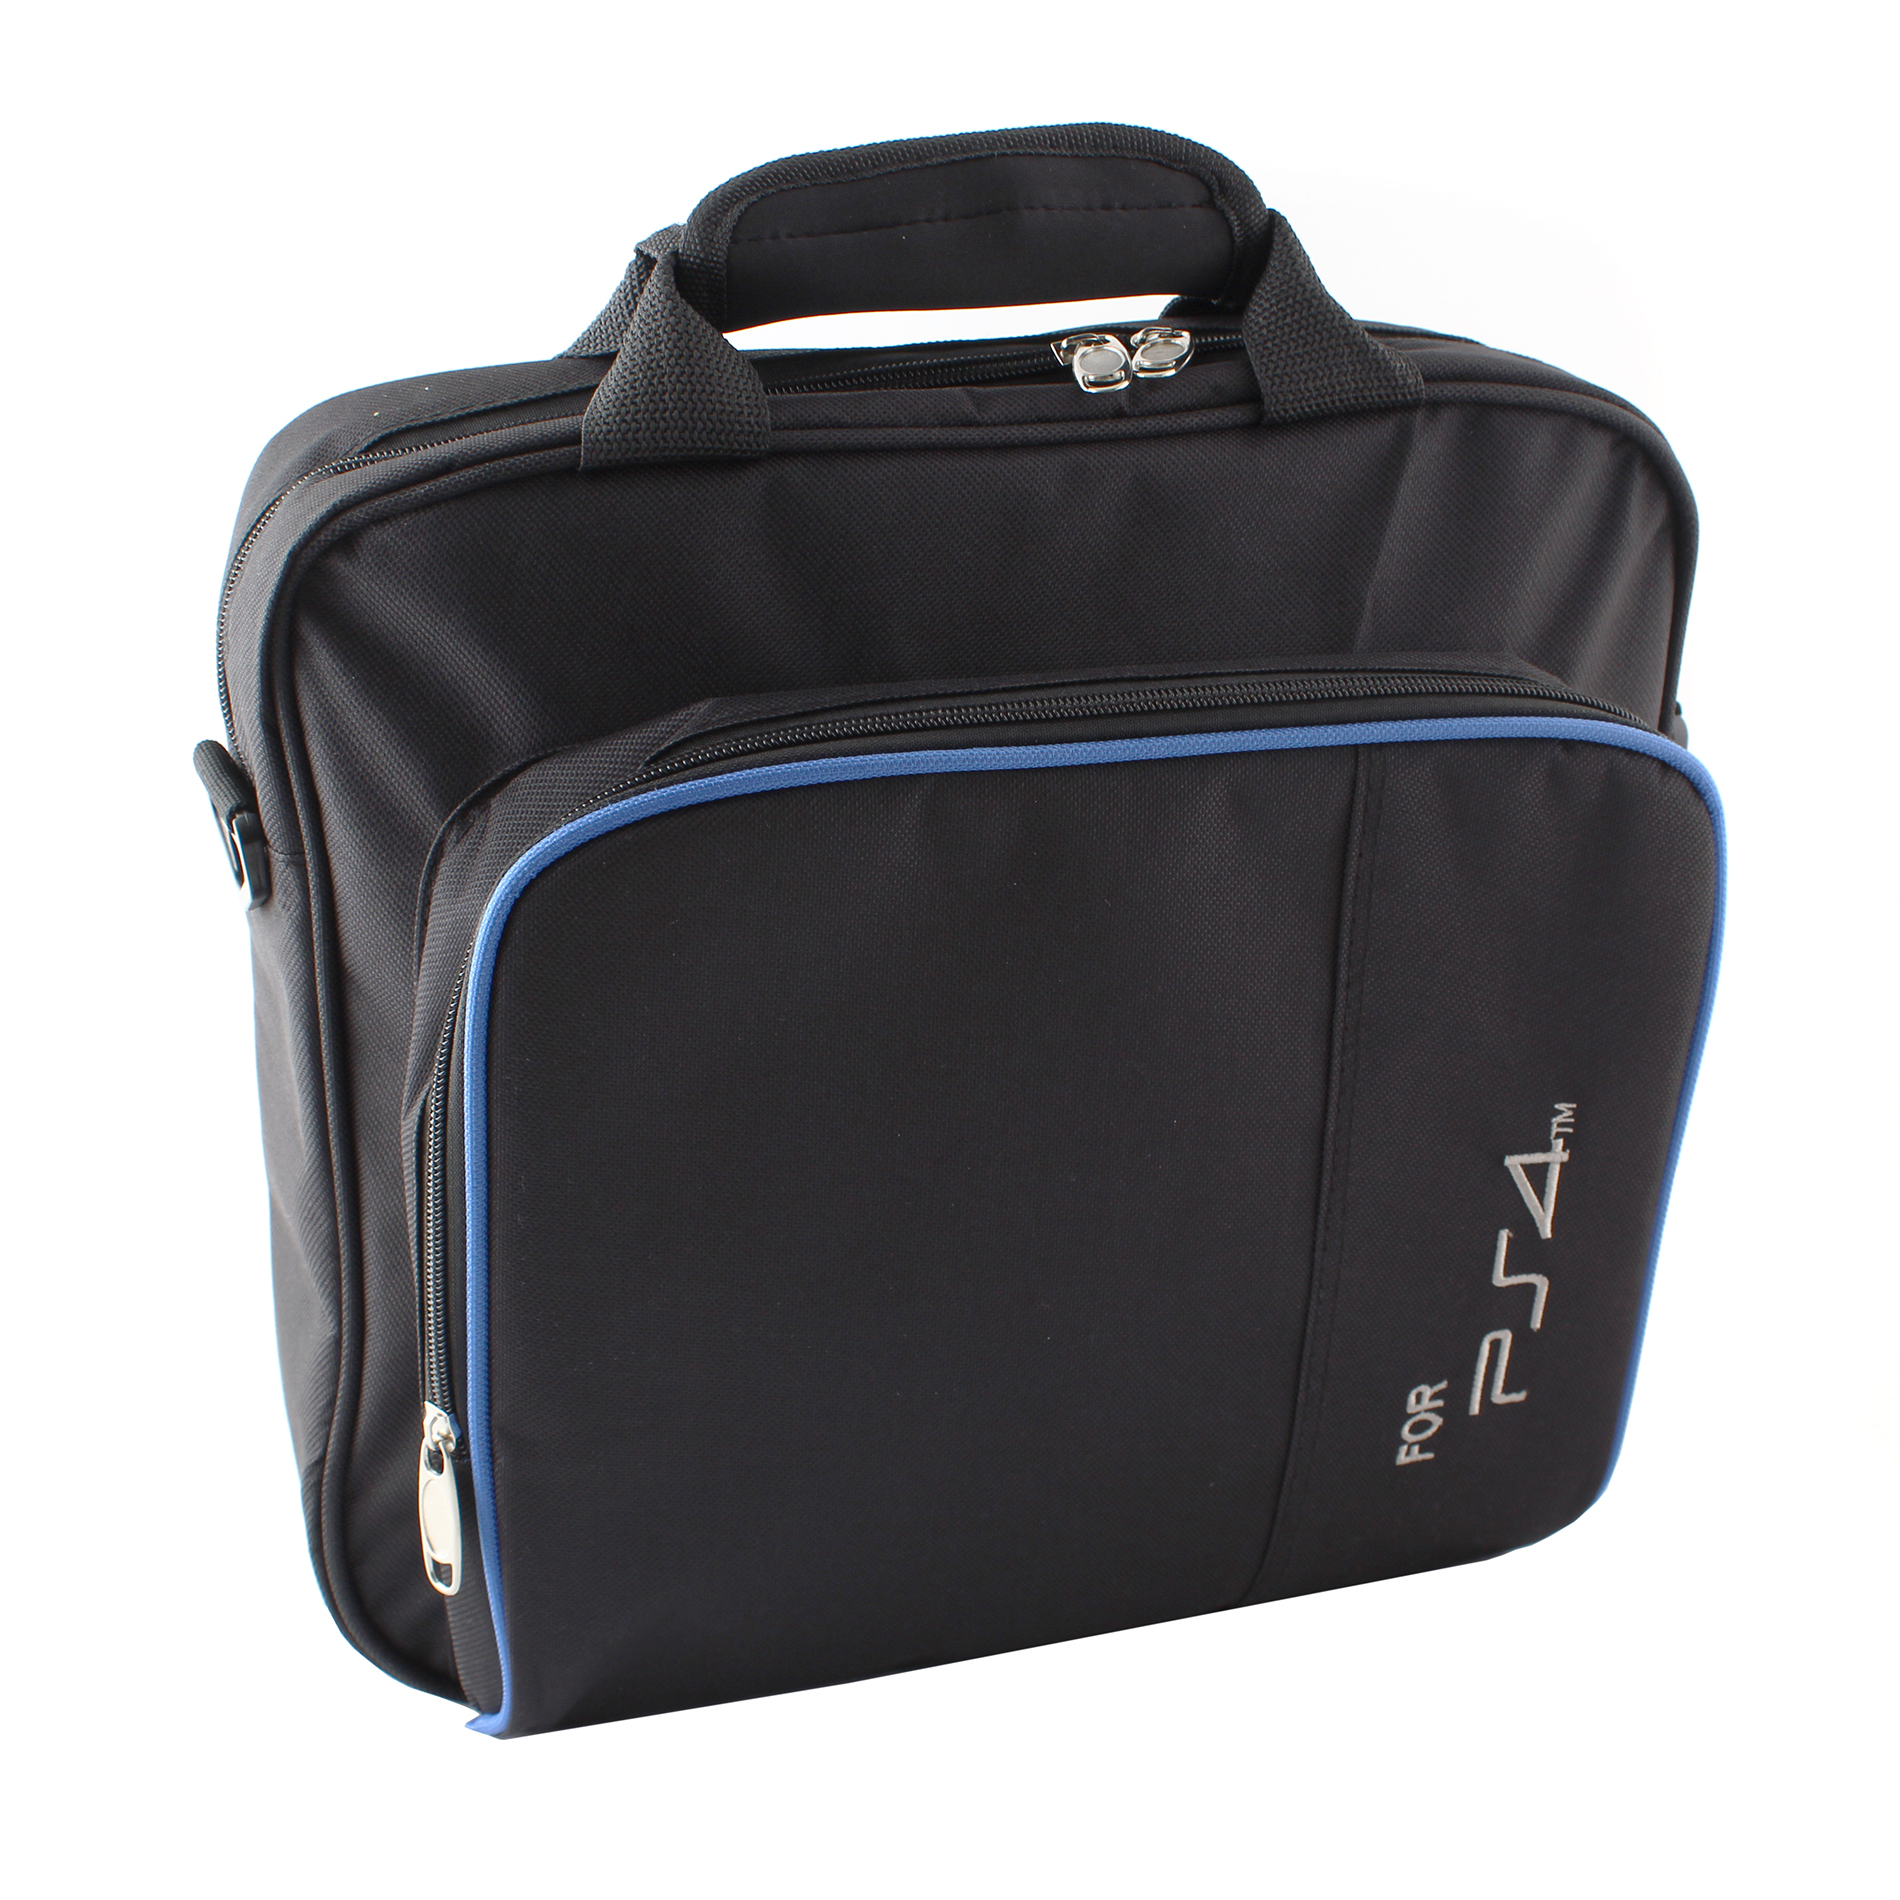 Black Carry Case Travel Bag For PlayStation4 PS4